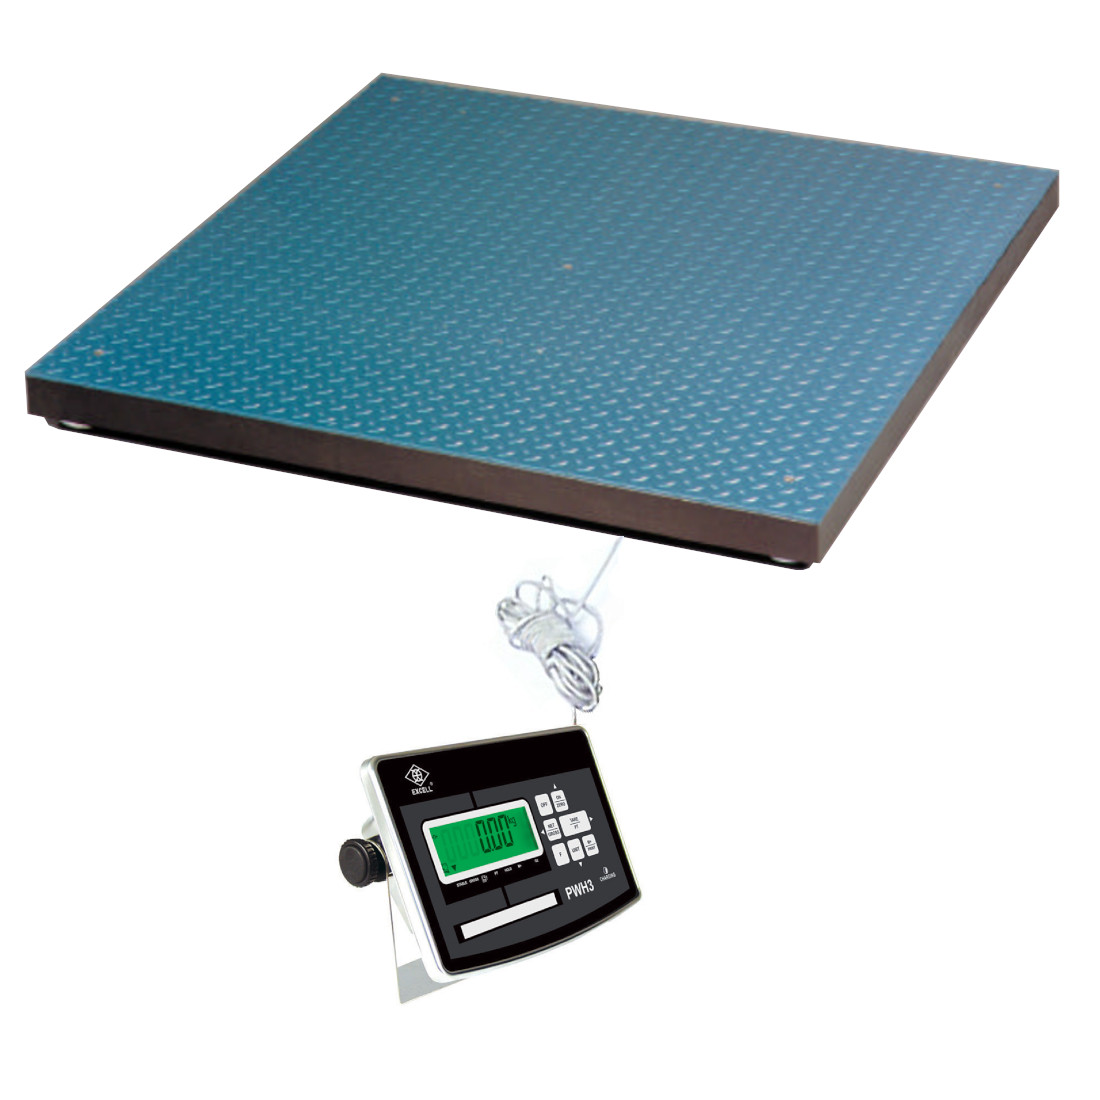 EXCELL PW Series | weighingscales.com